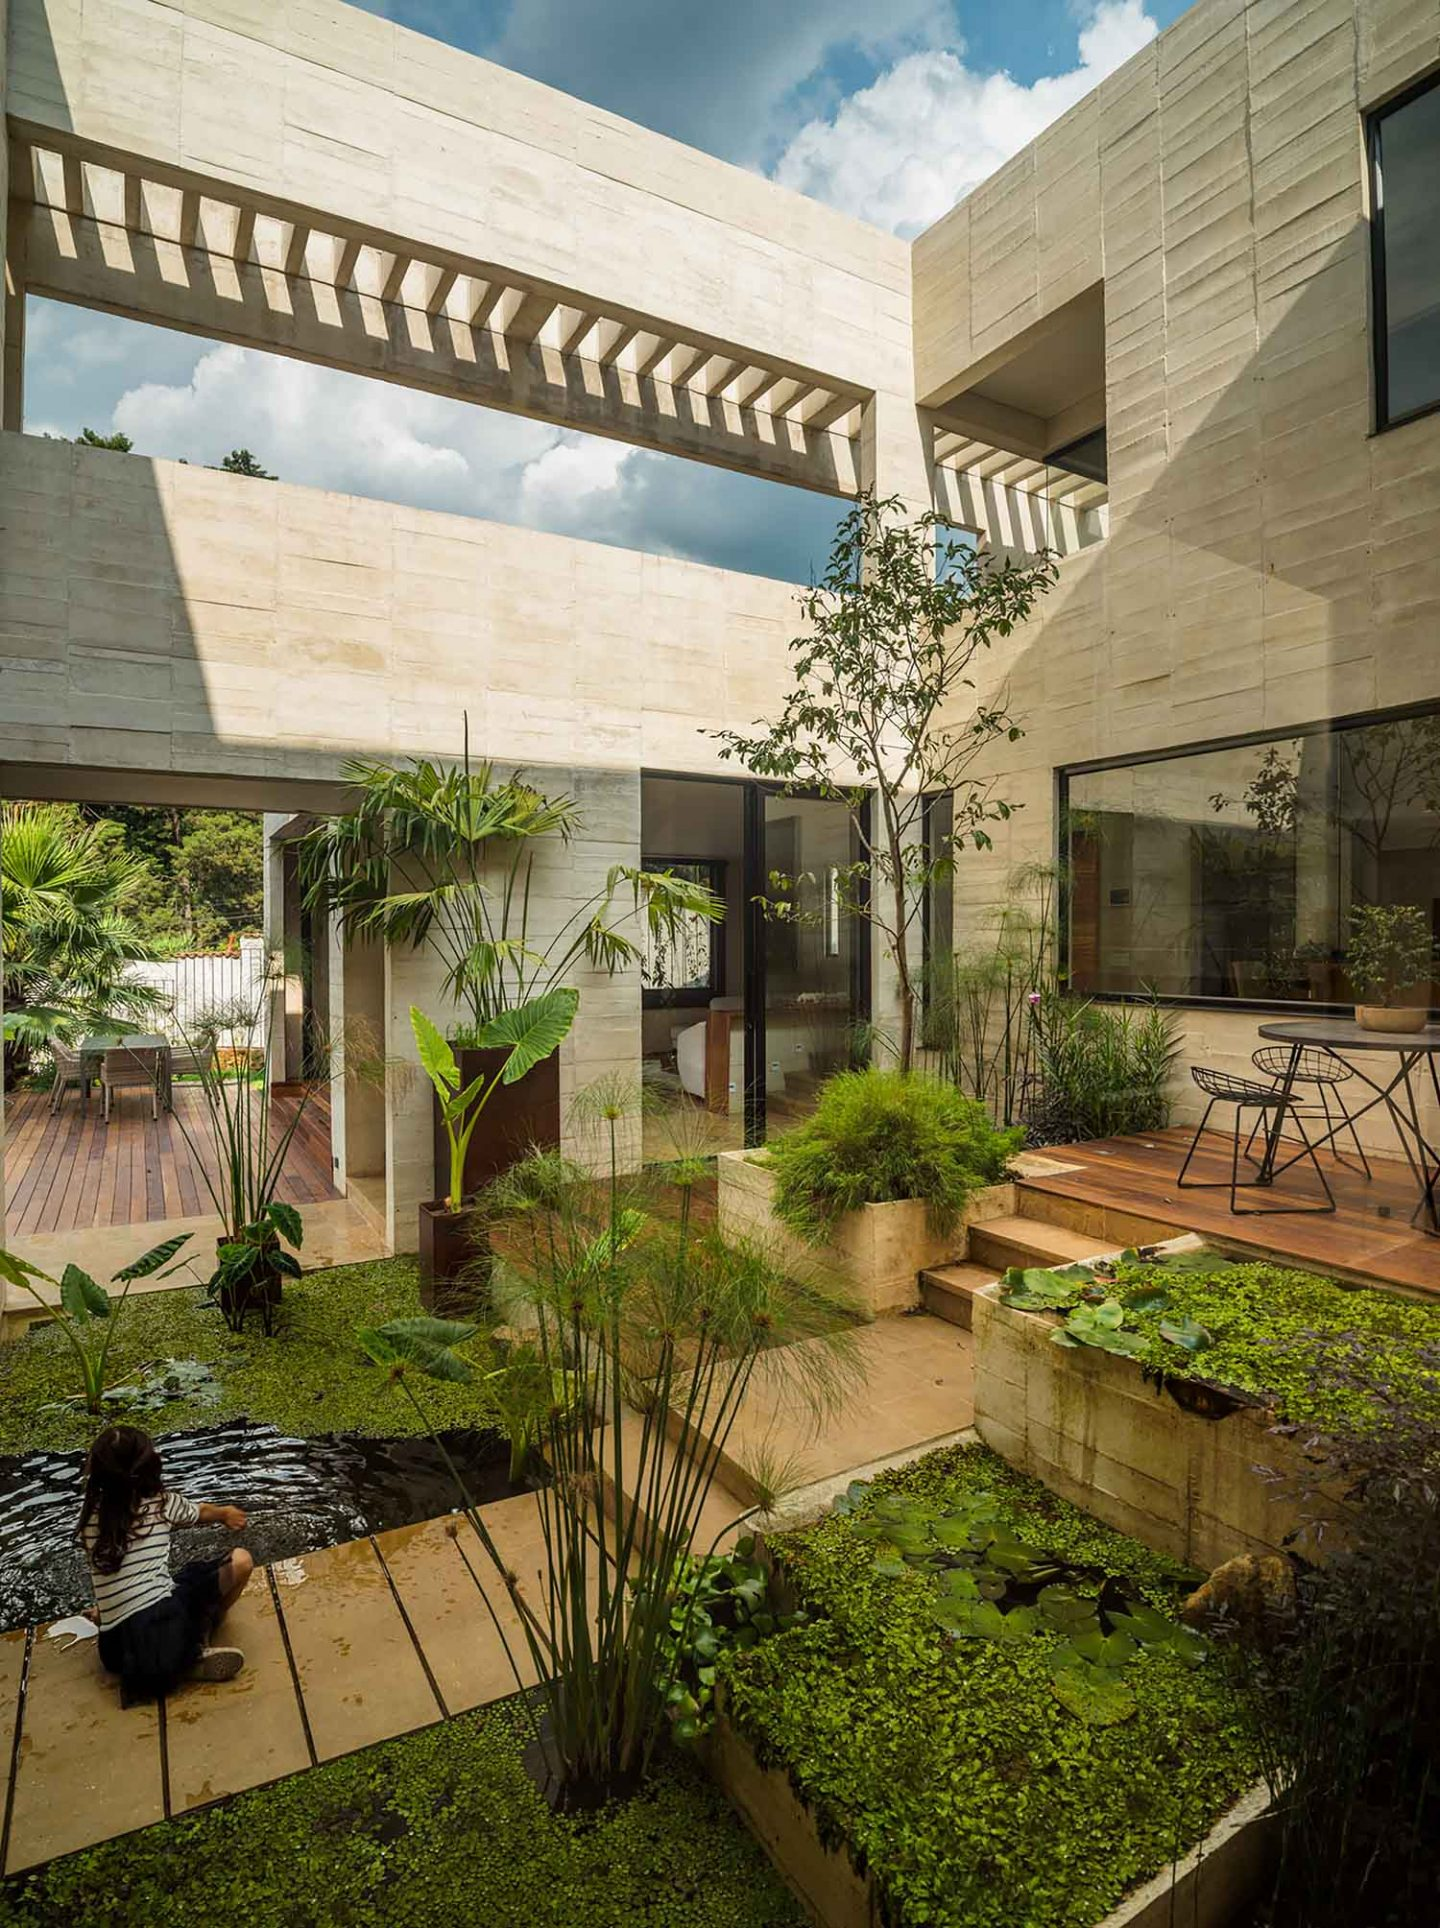 iGNANT_Architecture_Connatural_Garden_House_08